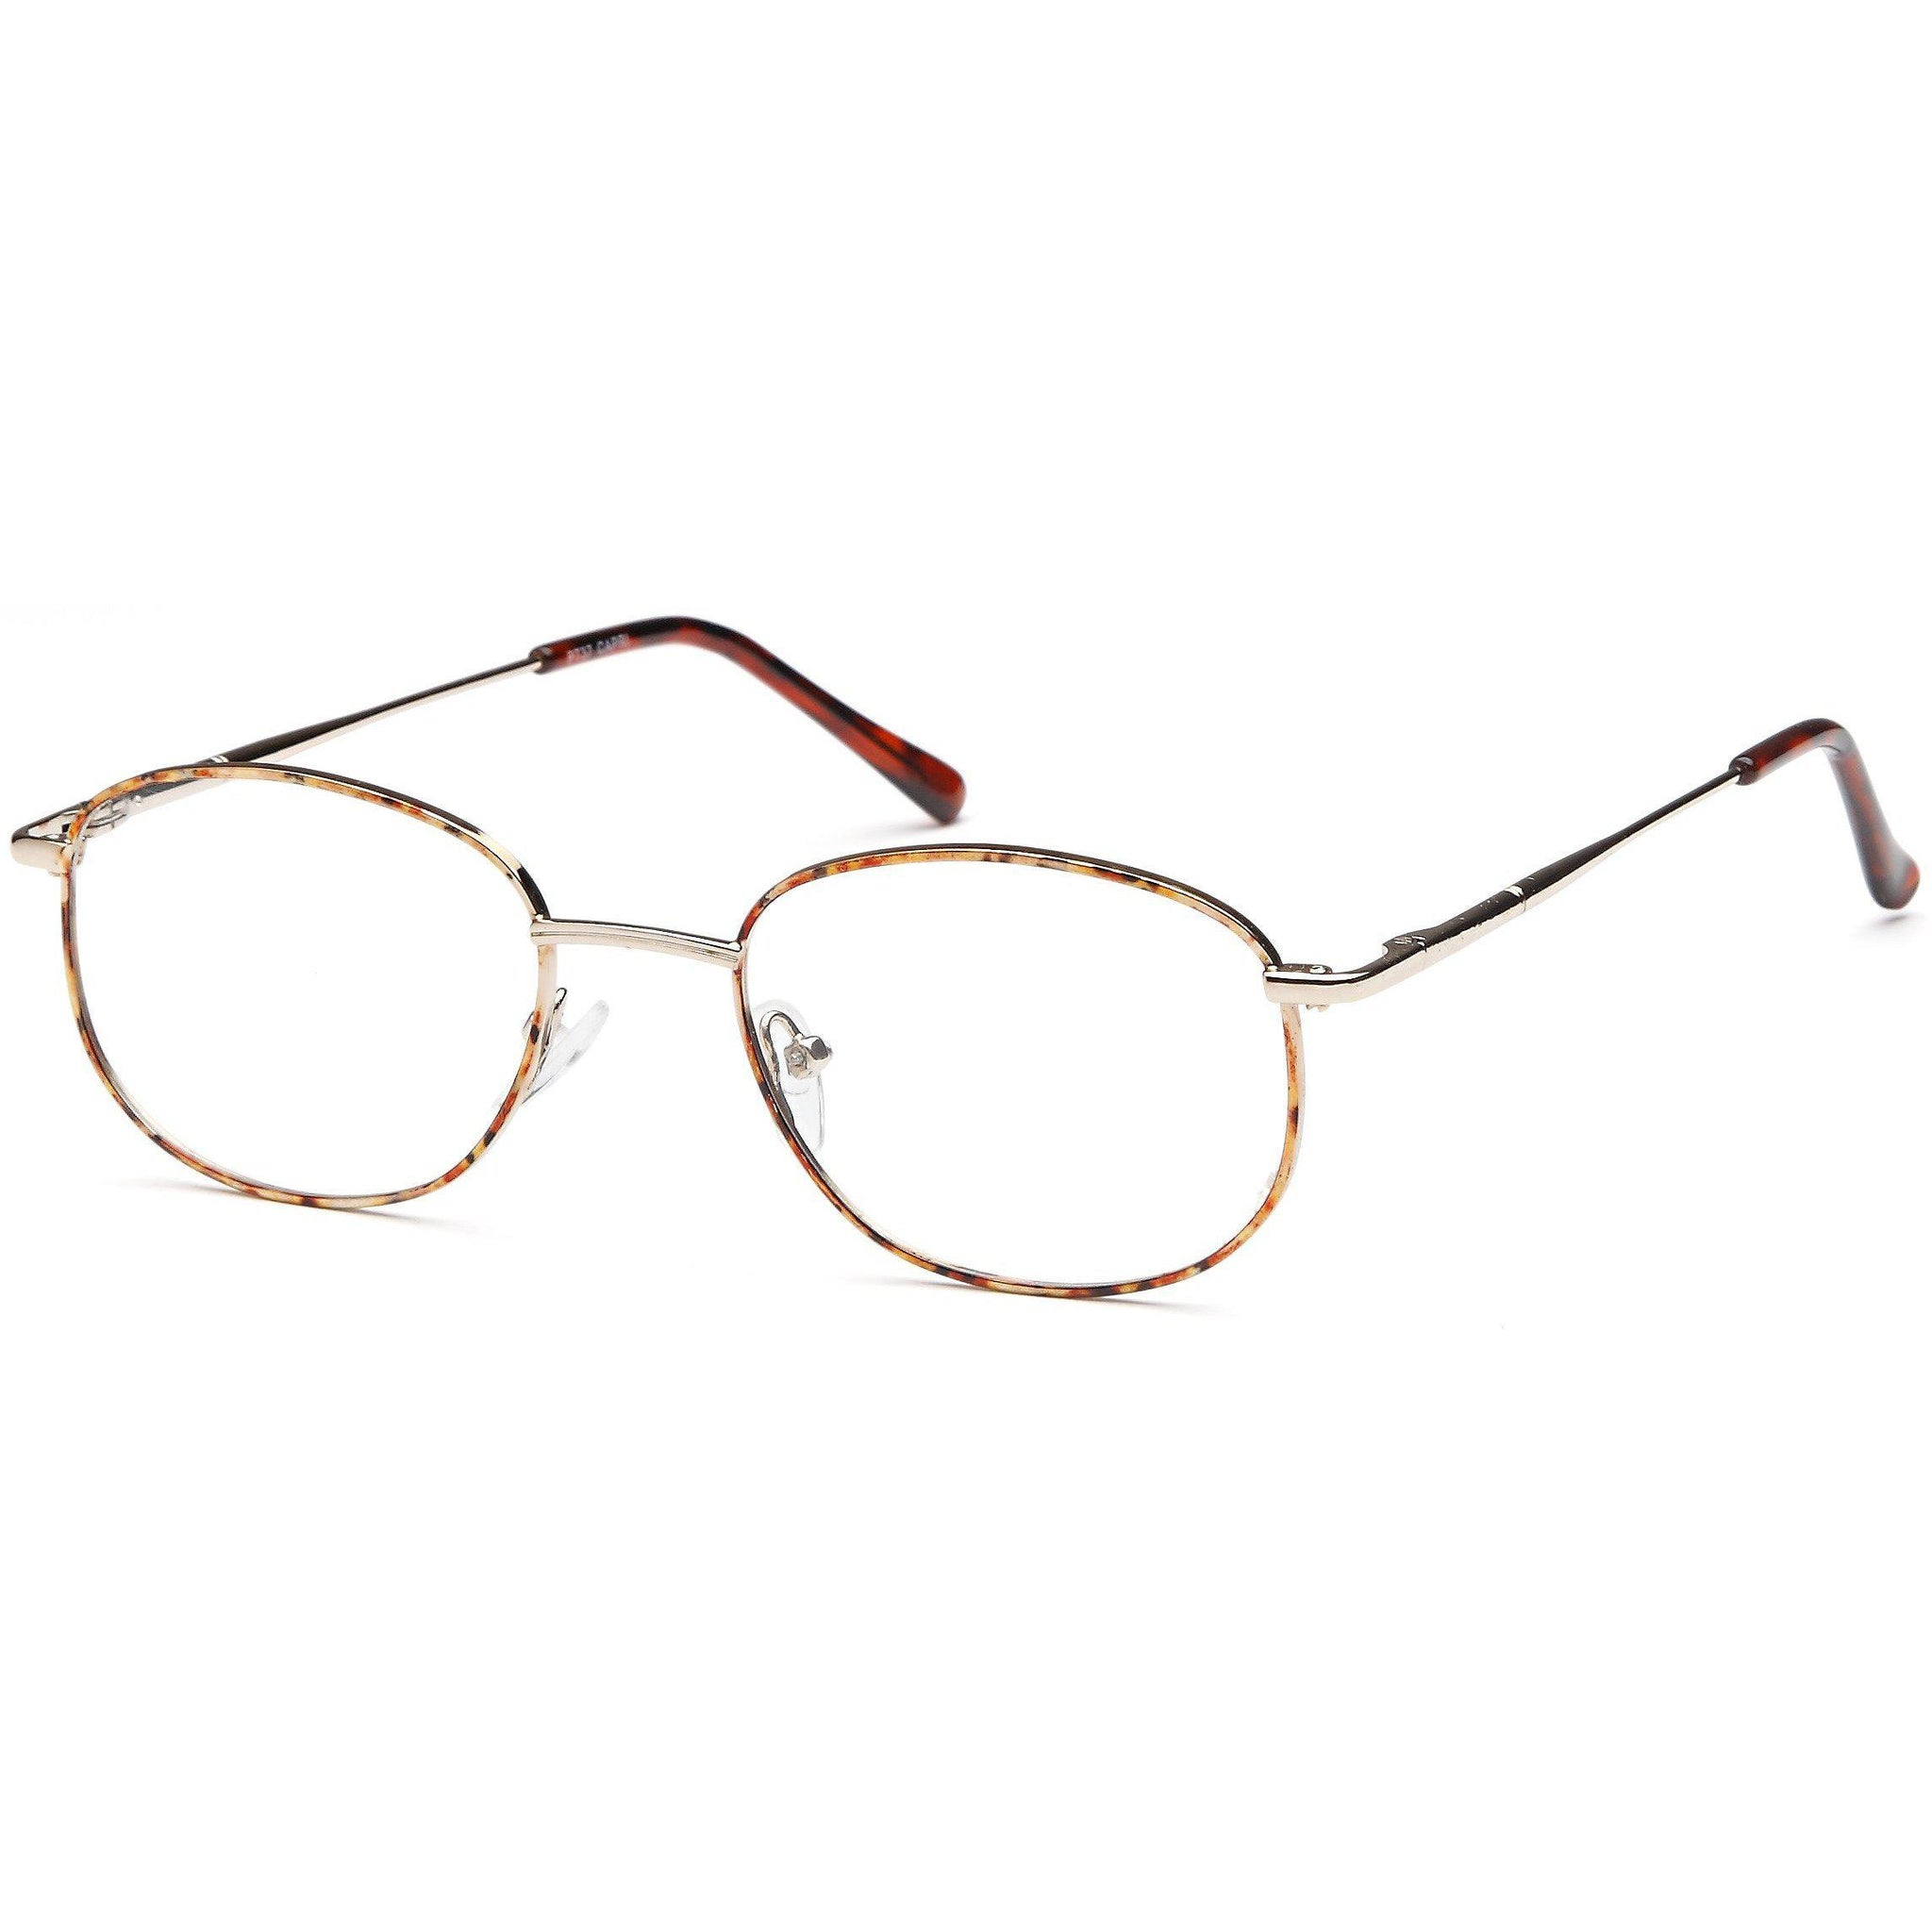 Appletree Prescription Glasses PT 37 Eyeglasses Frame